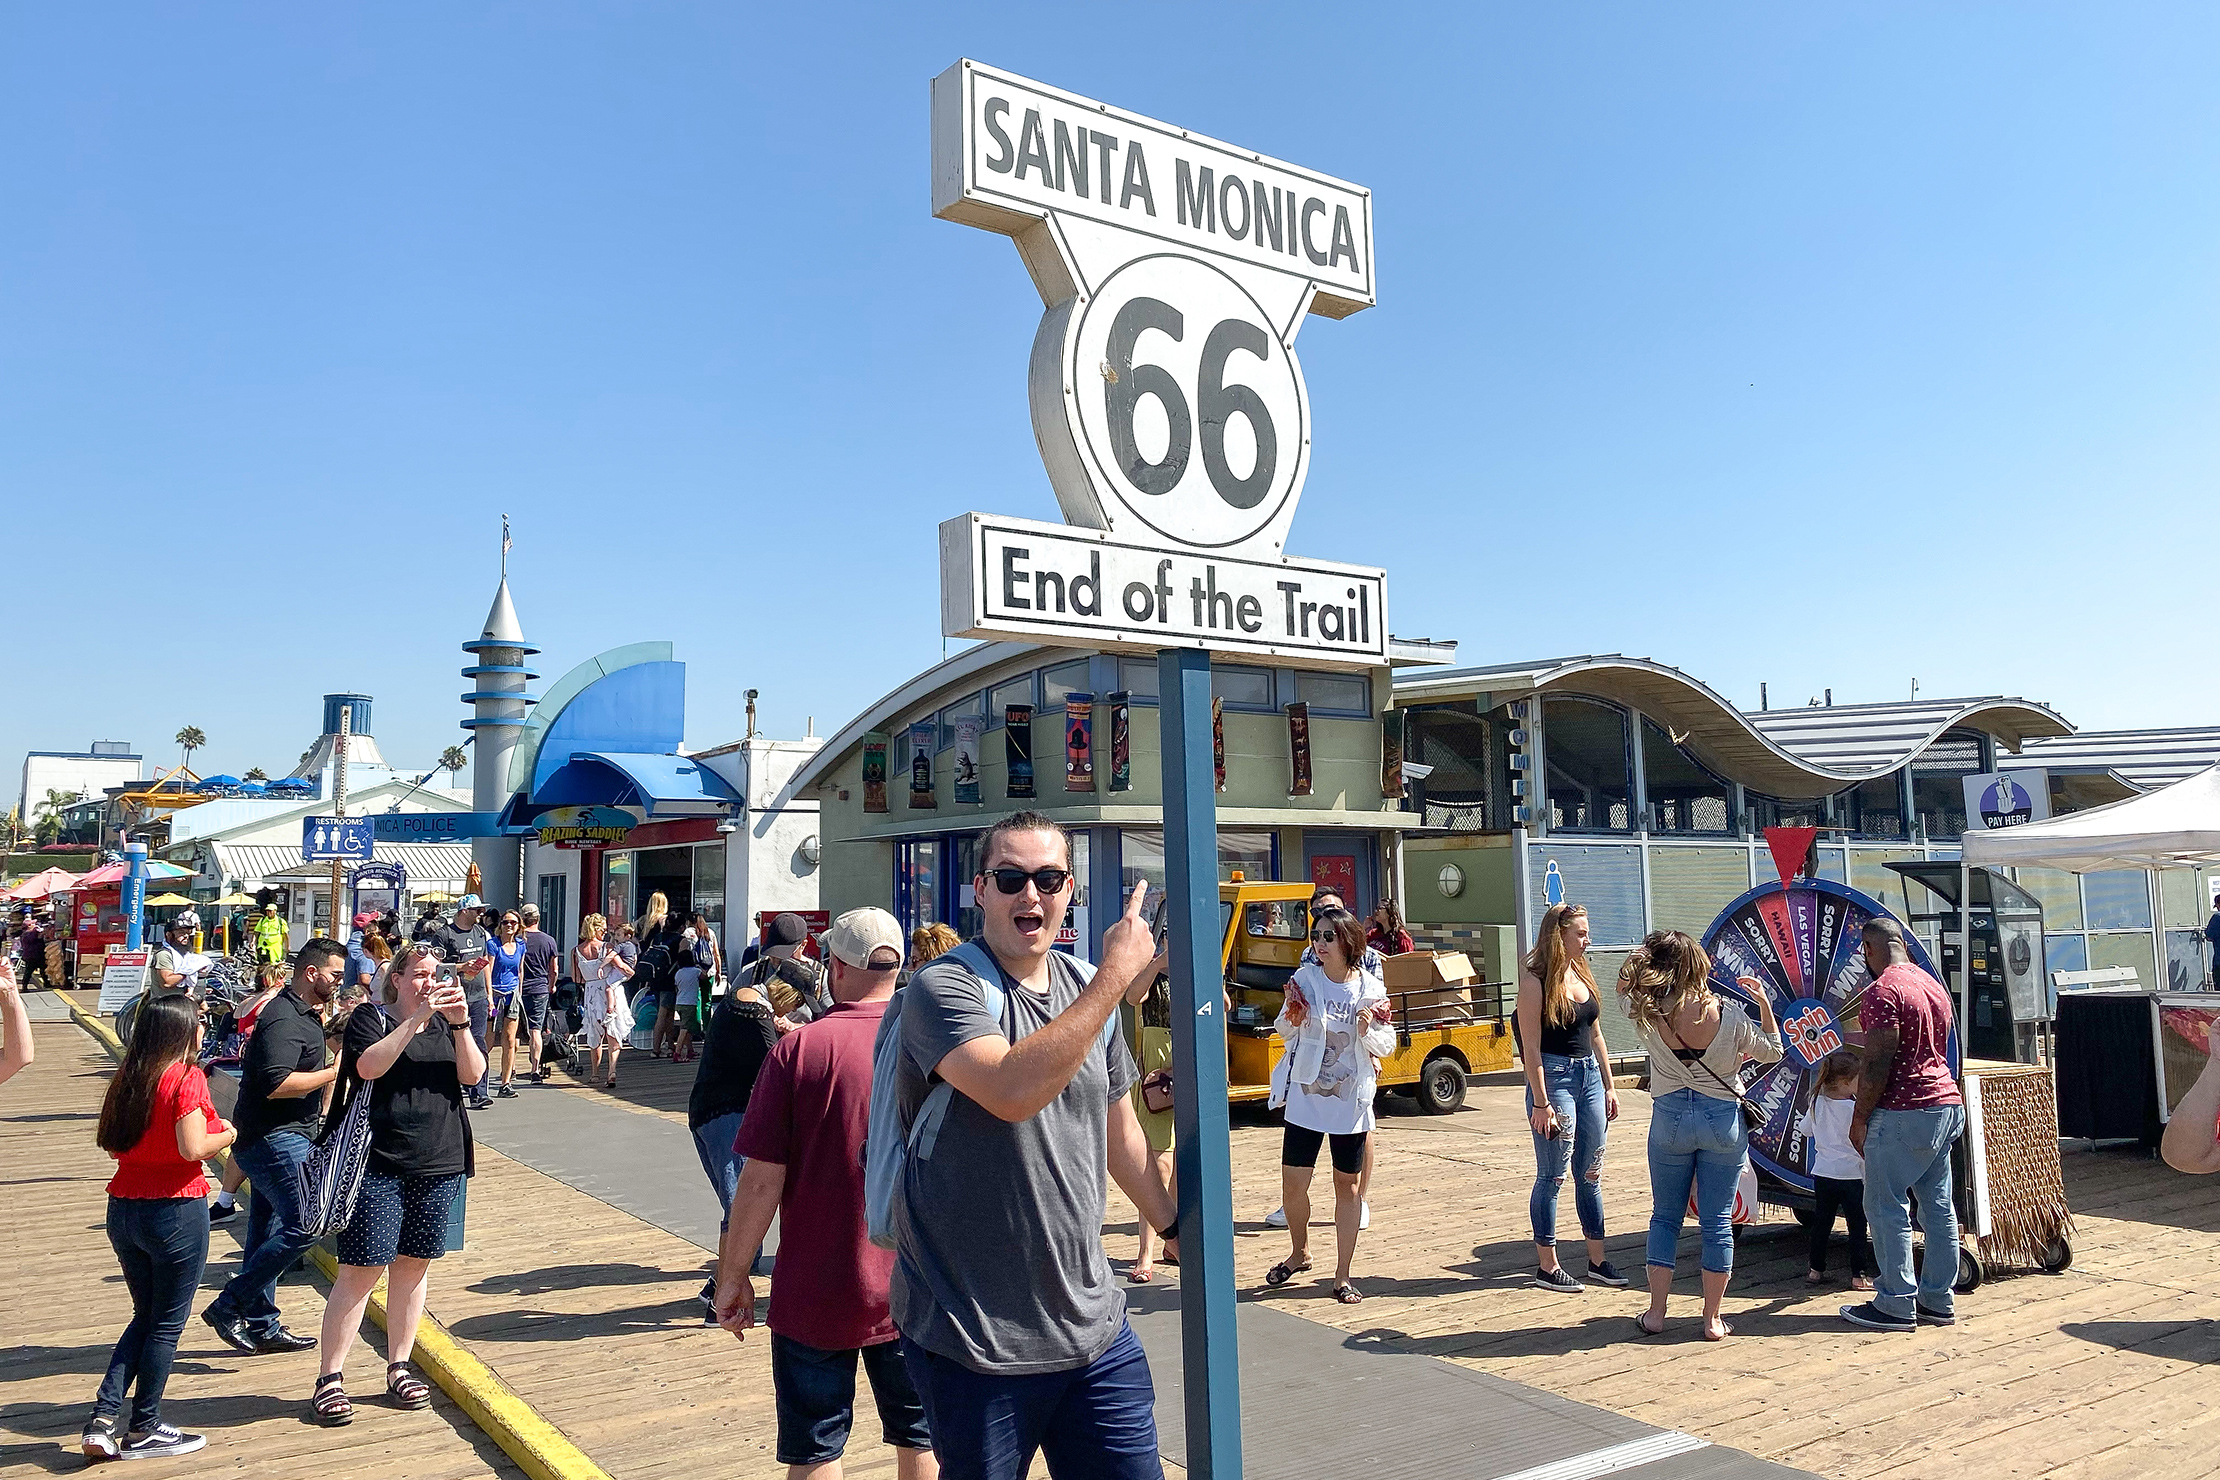 Visiting The Santa Monica Route 66 Sign